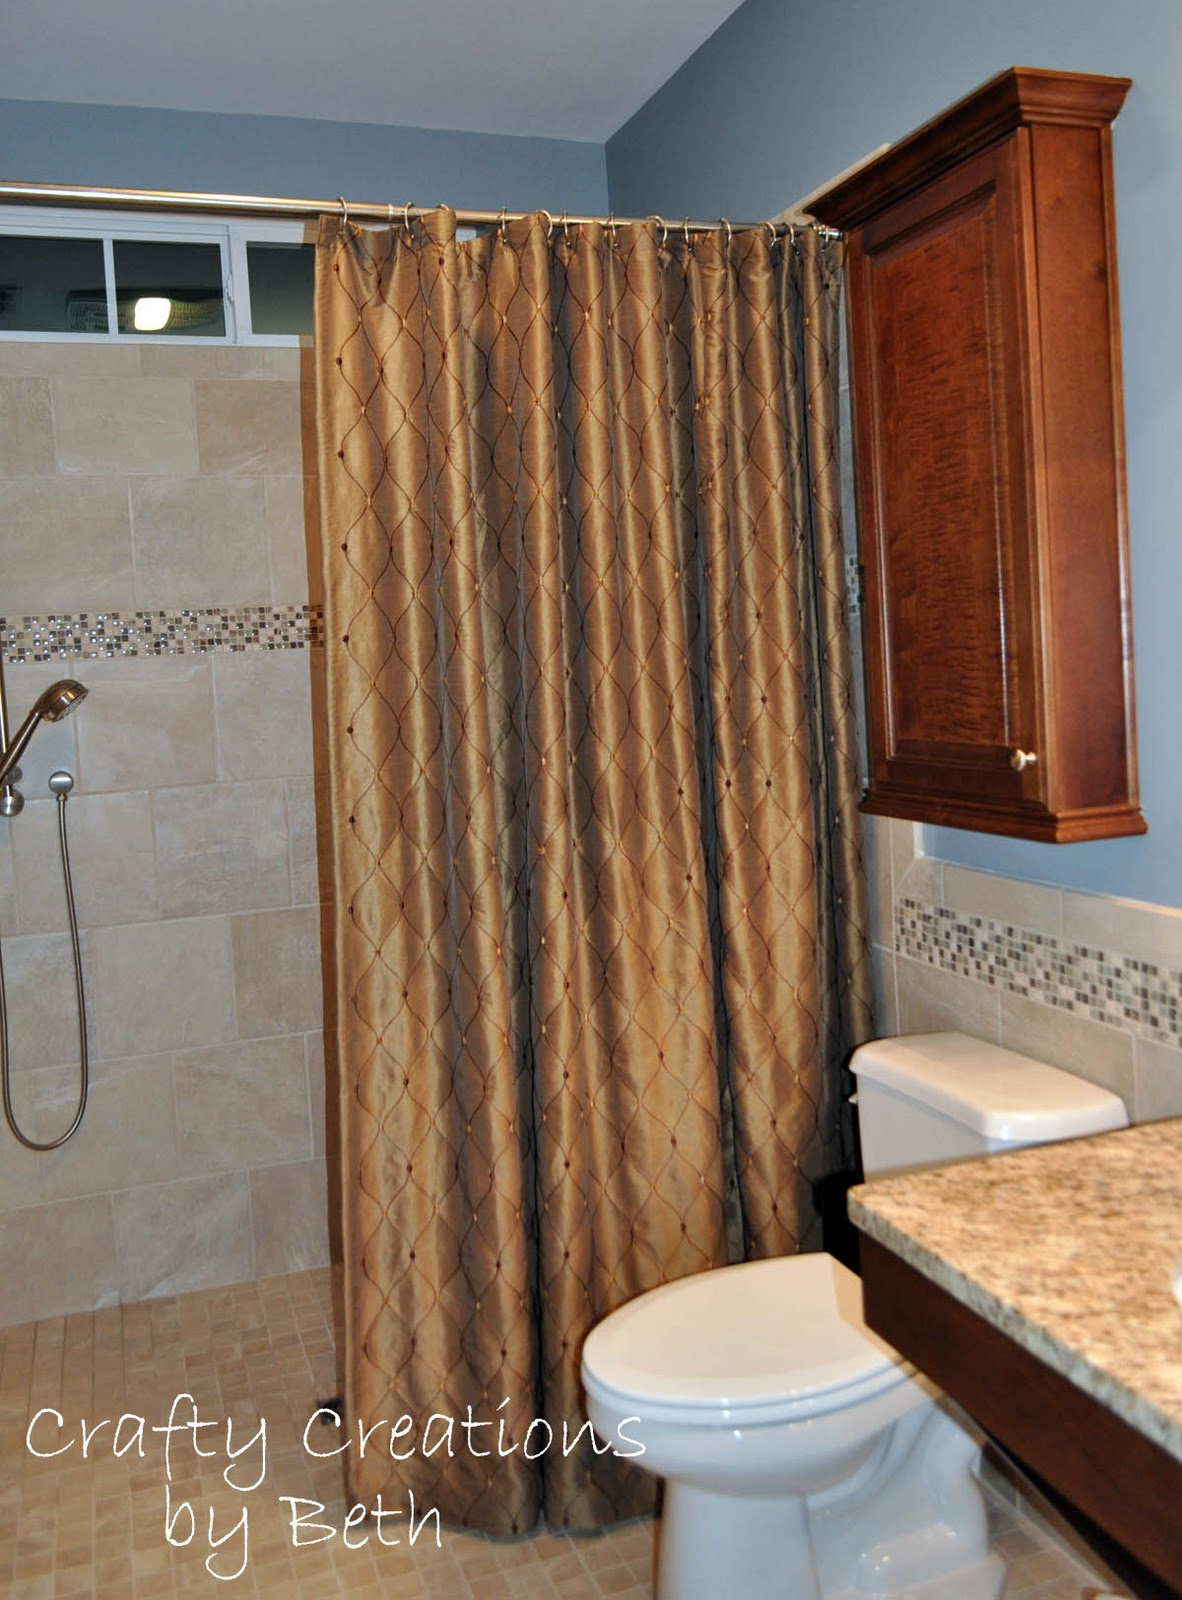 Wheelchair Accessible Bathroom Remodel Sonya Hamilton Designs - Bathroom remodel for wheelchair access